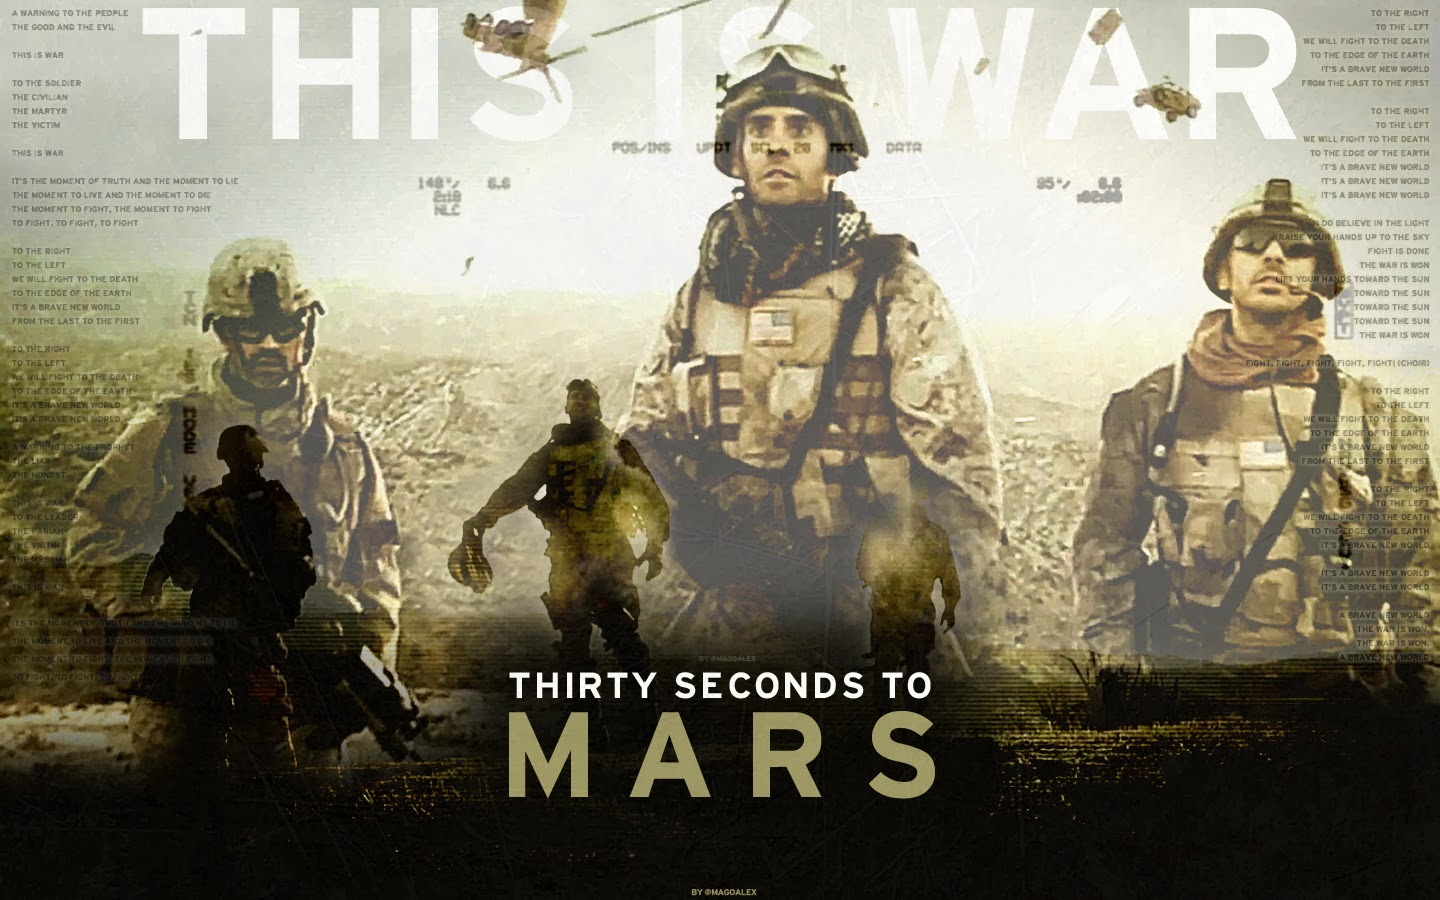 30 seconds to mars this is war mp3 zippy